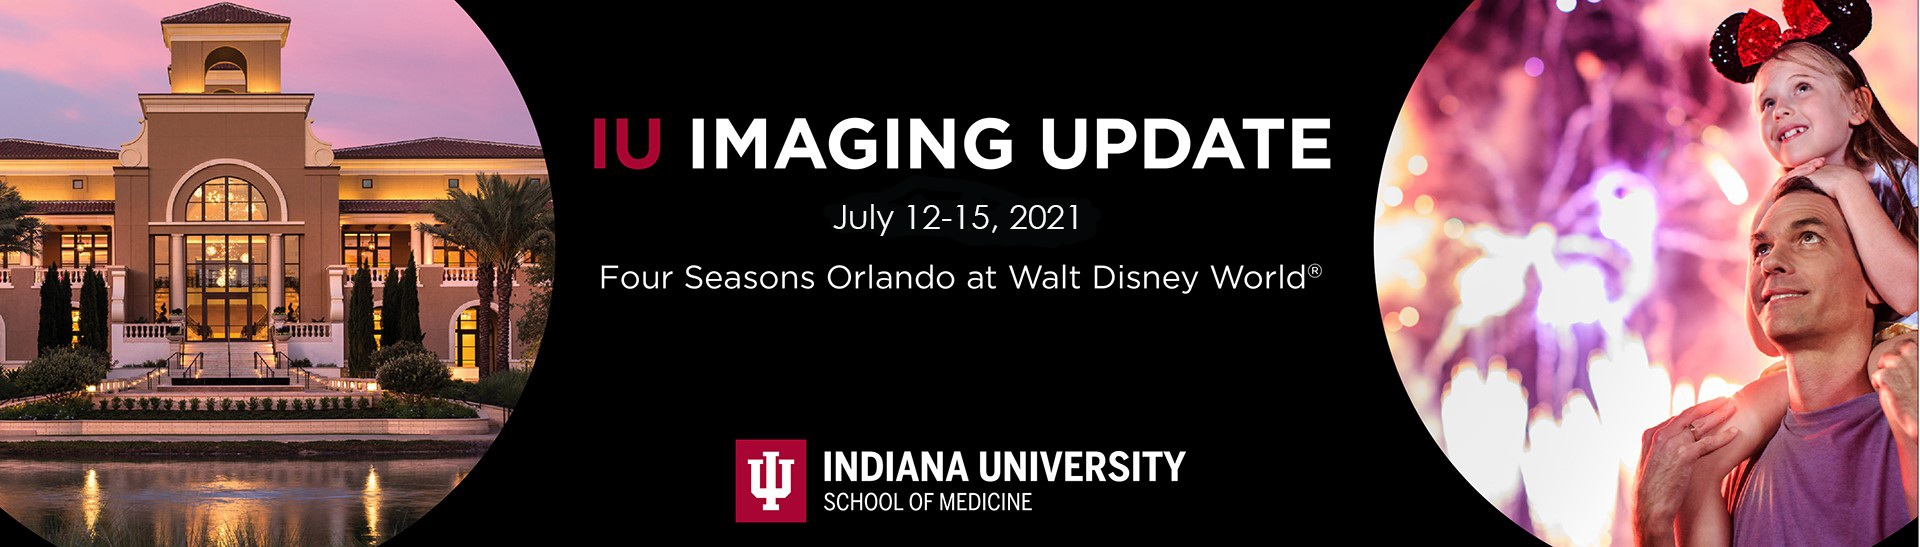 Indiana University Imaging Update July 2021